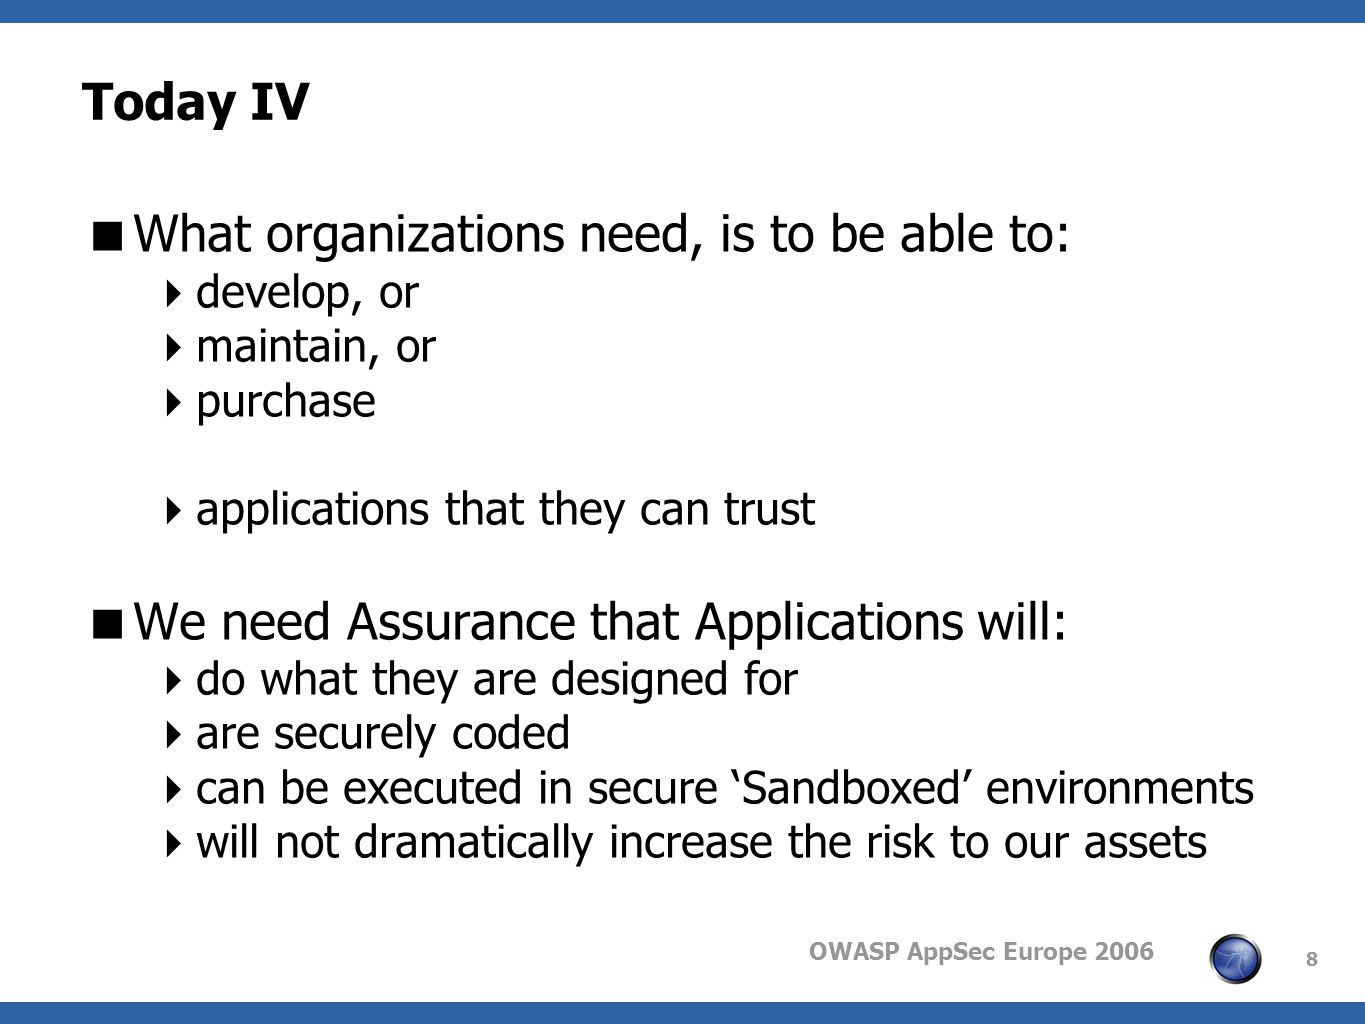 OWASP AppSec Europe 2006 8 Today IV What organizations need, is to be able to: develop, or maintain, or purchase applications that they can trust We need Assurance that Applications will: do what they are designed for are securely coded can be executed in secure Sandboxed environments will not dramatically increase the risk to our assets